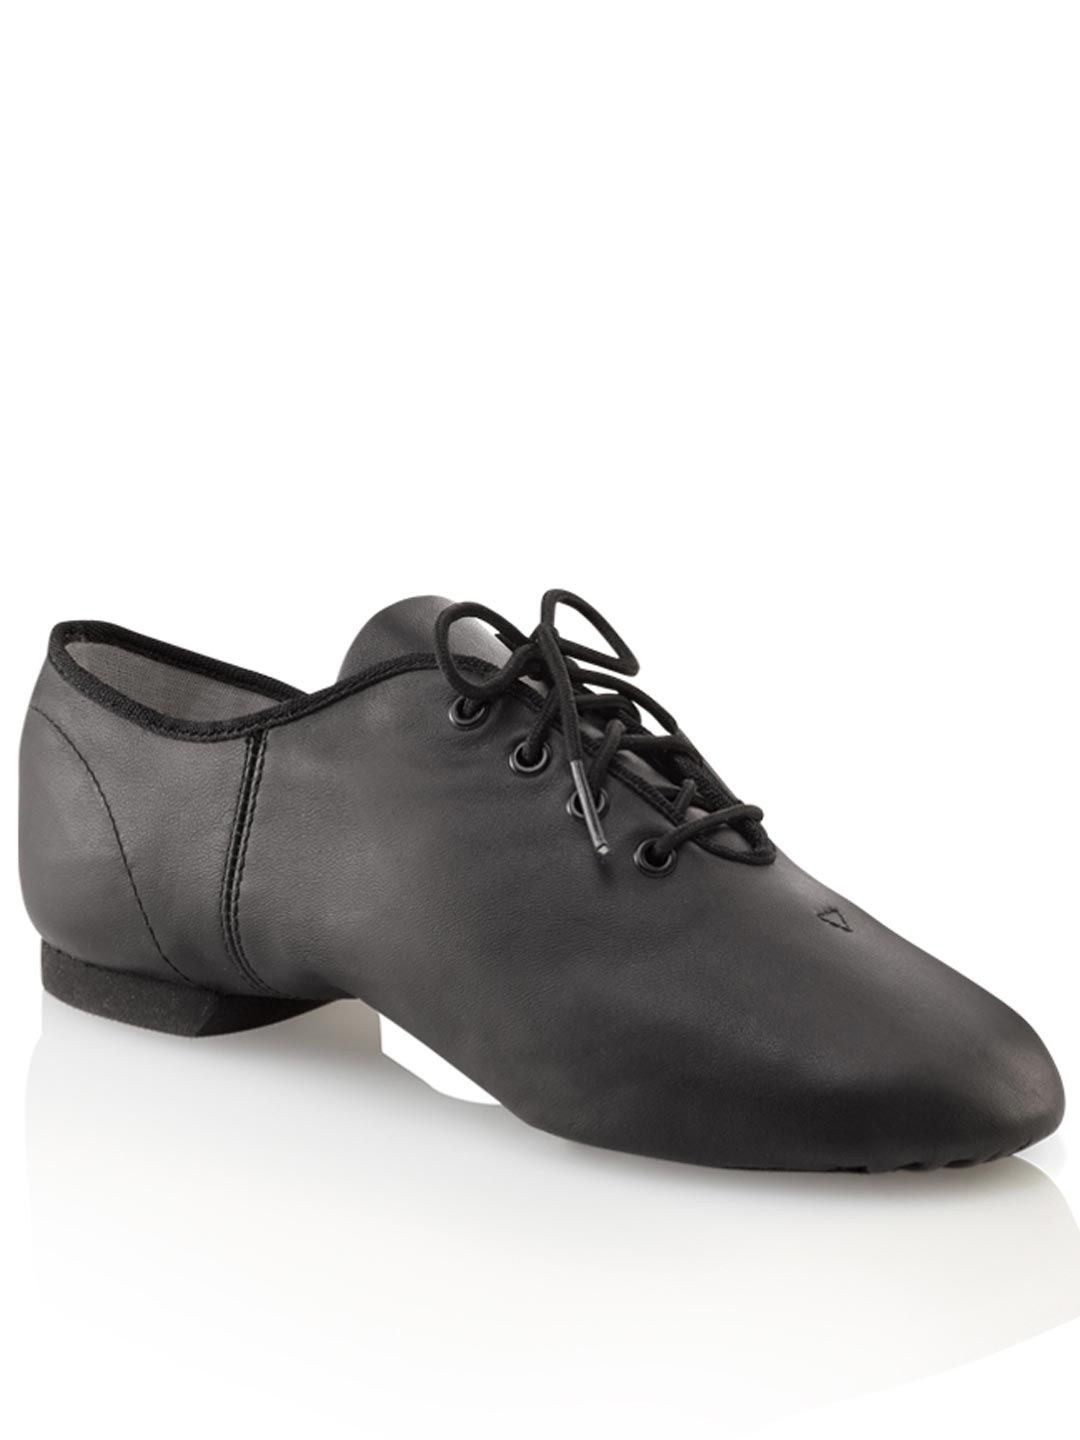 E-Series Lace-up Jazz Shoe for Every